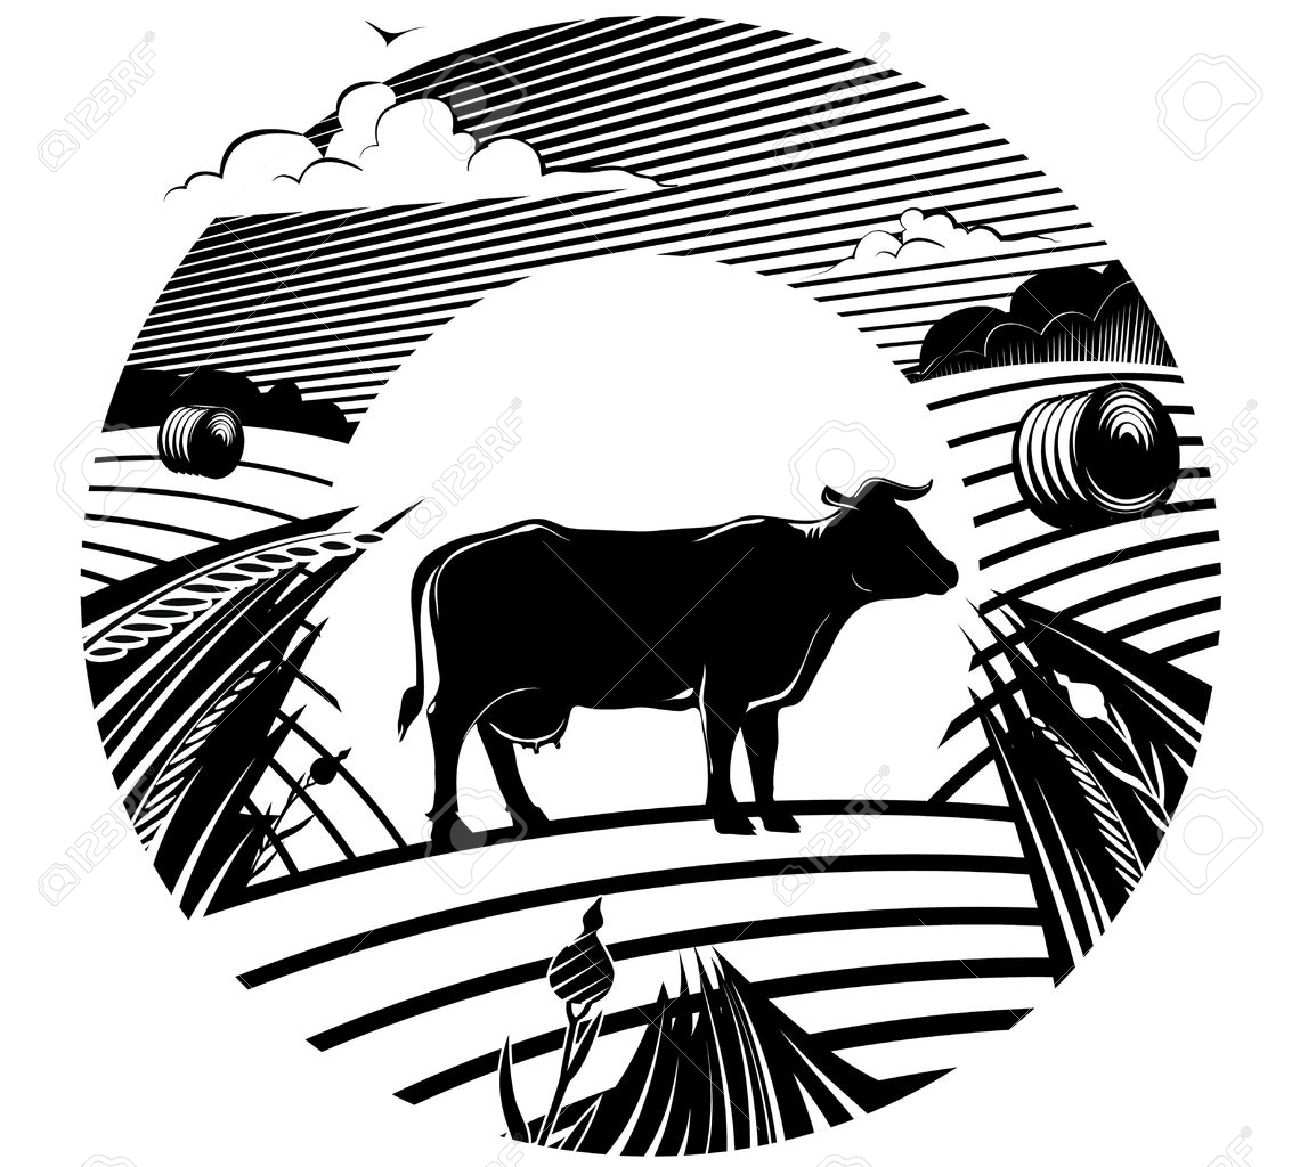 Rural landscape with cow stands on field under cloudy sky. Vector illustration in the engraving manner. Picture can be used for design labels. Stock Vector - 17246506